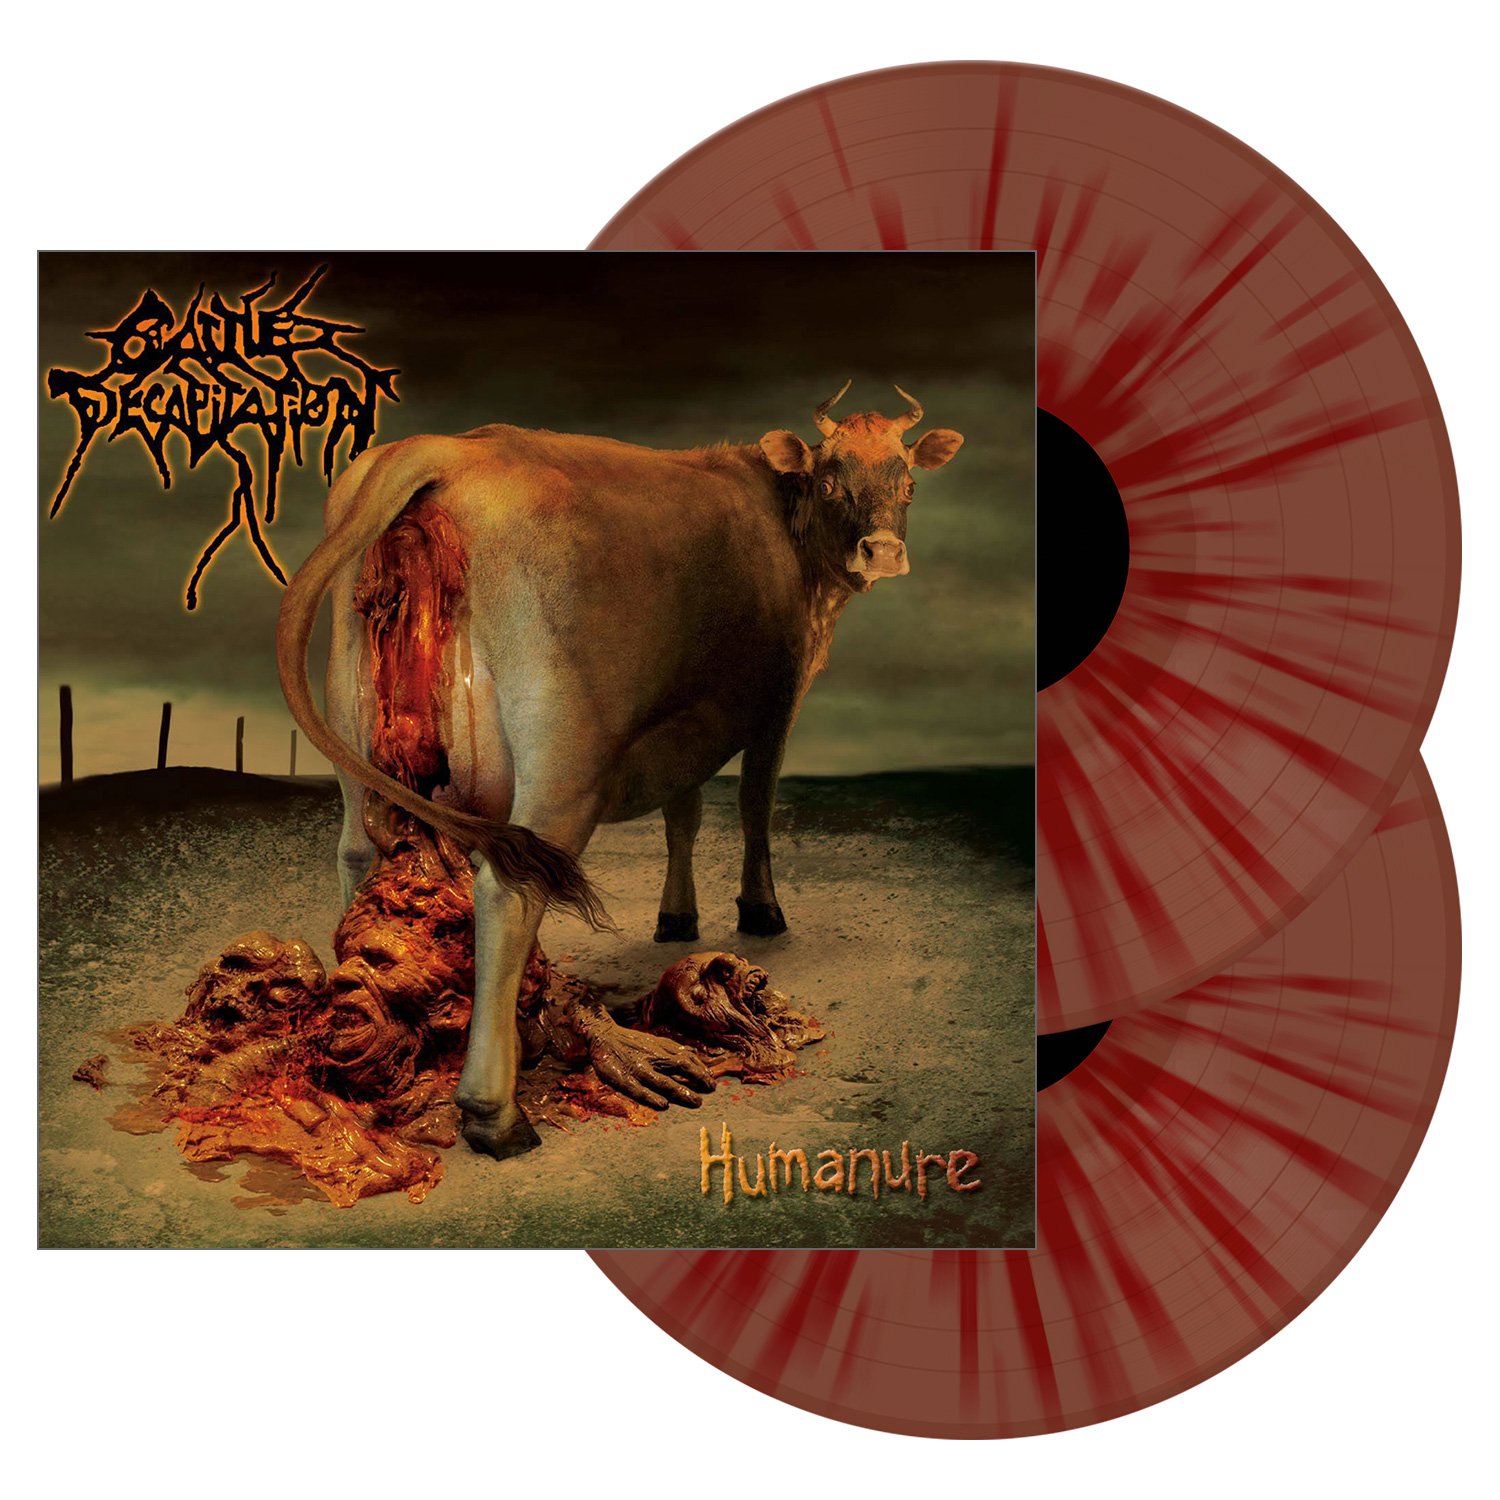 Cattle Decapitation Quot Humanure Bloody Stool Colored Vinyl